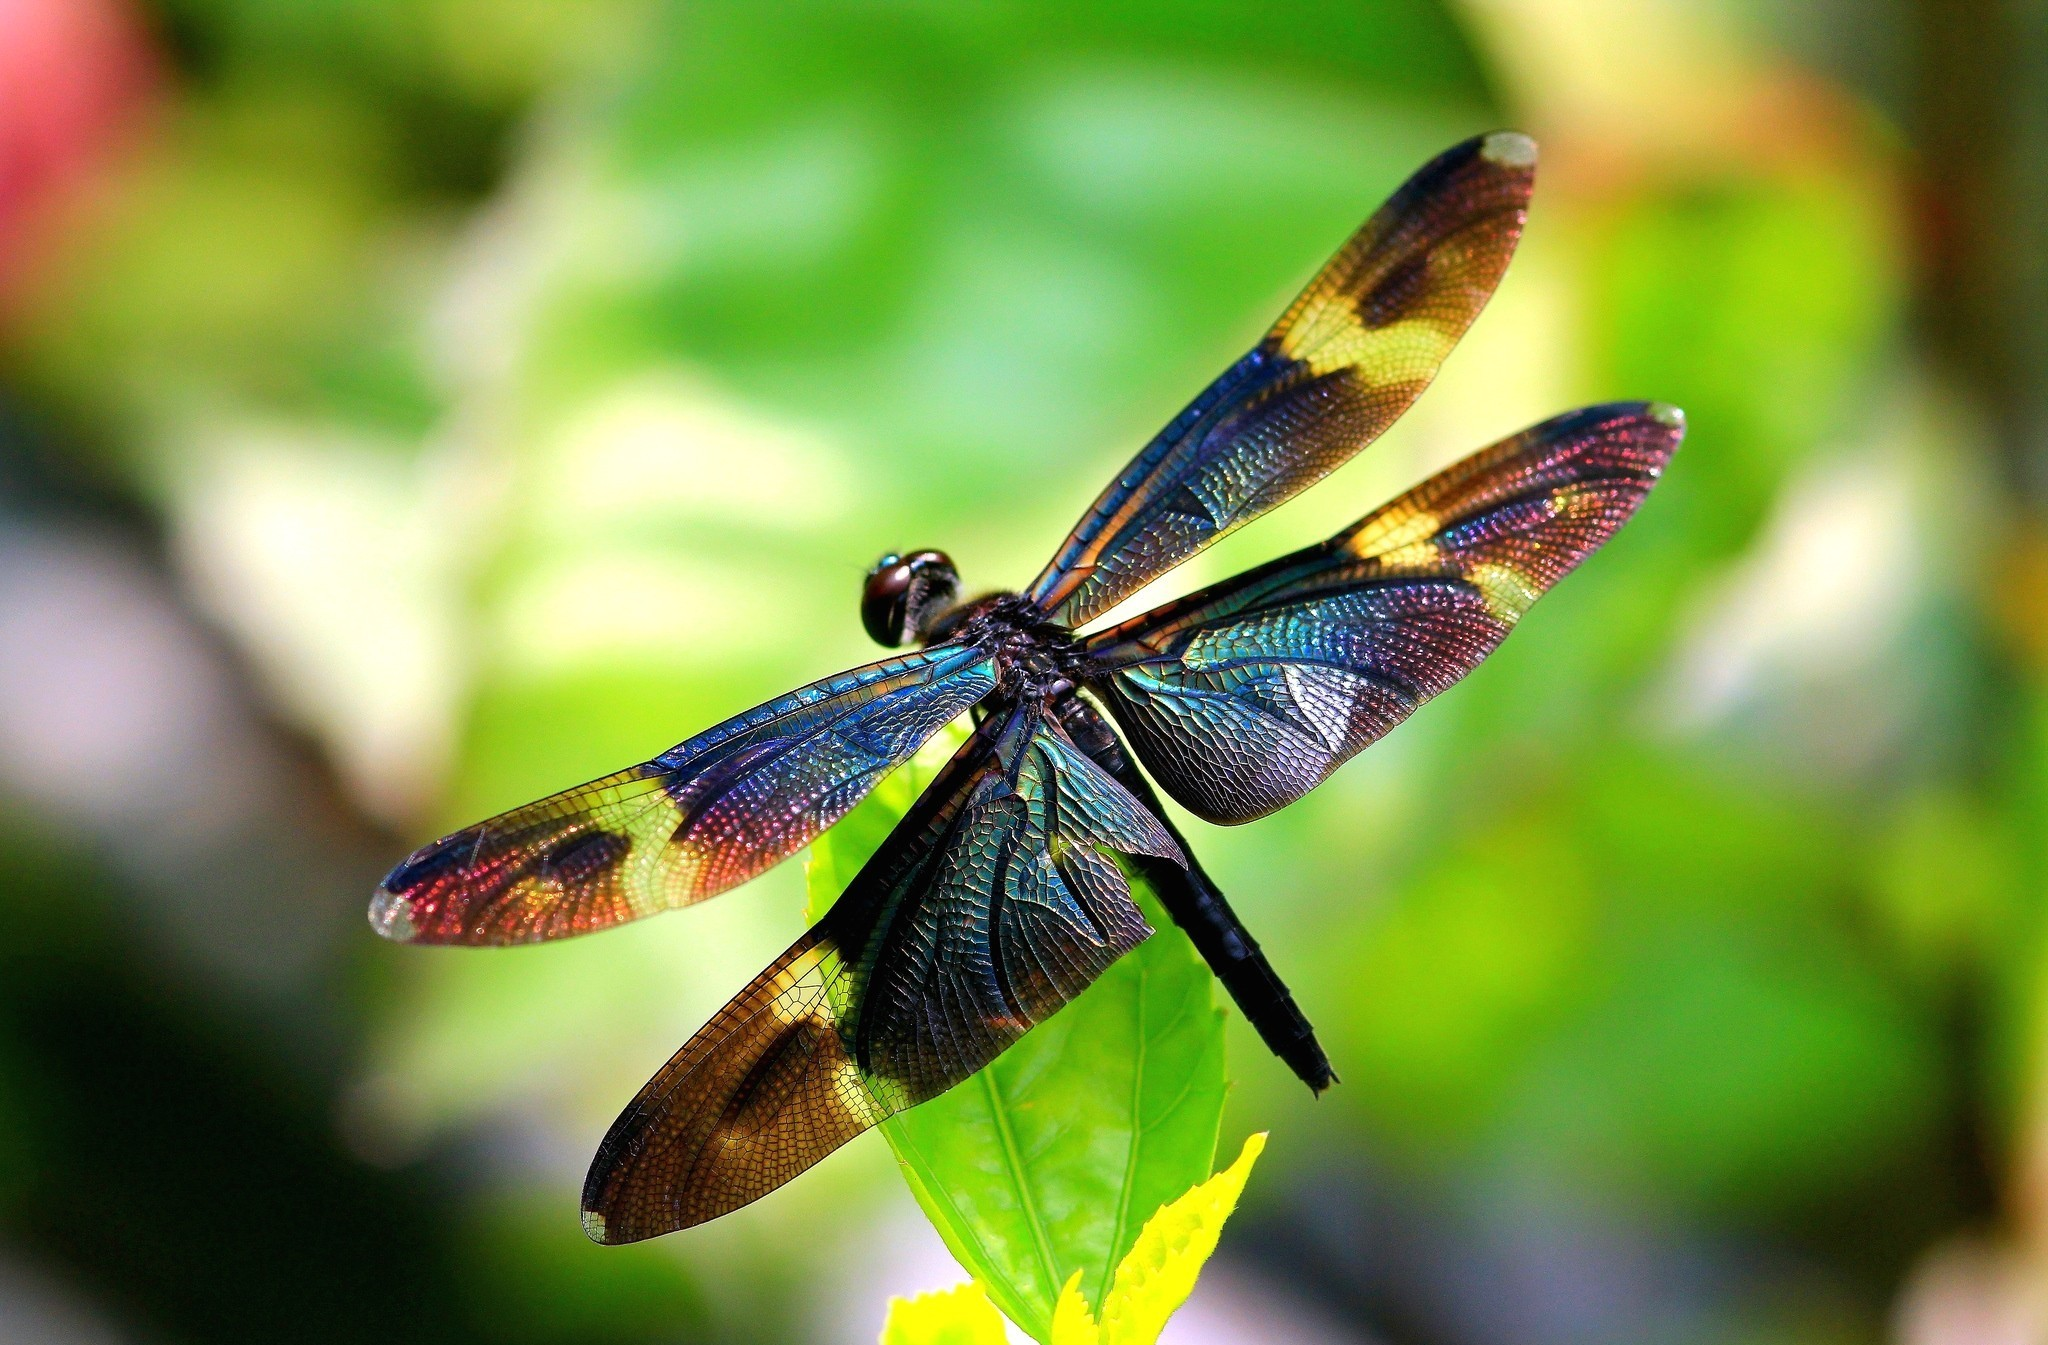 dragonfly wallpaper hd 49540